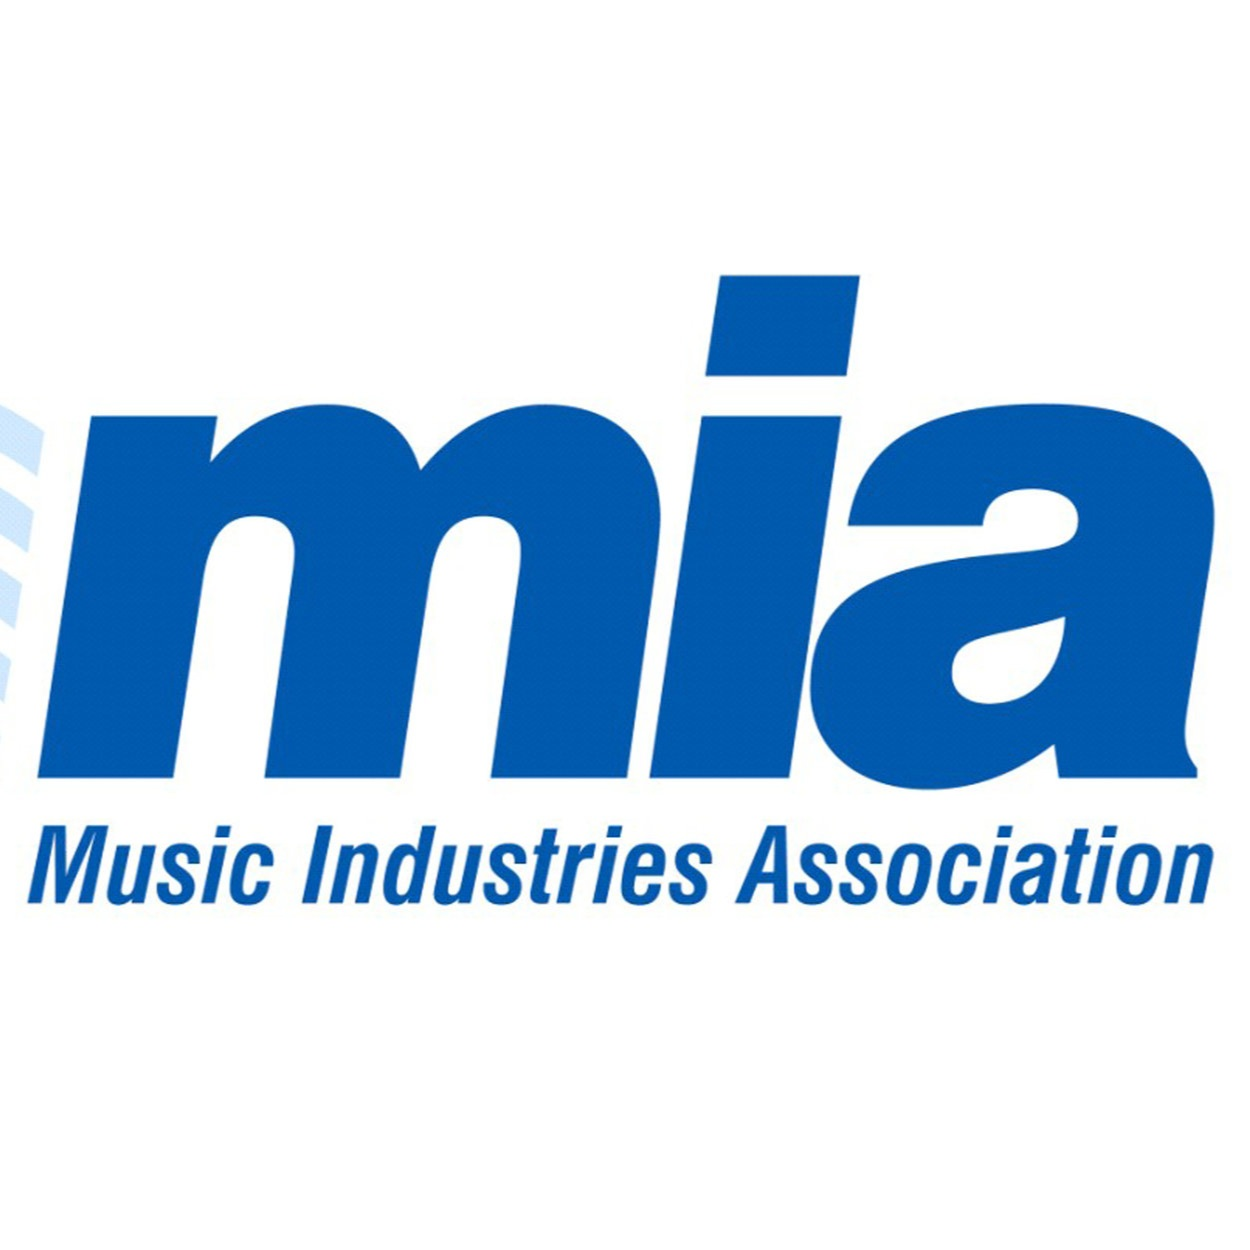 Music Industries Association - Same article as Take It Away, but featured on MIA's site.July 16th 2019